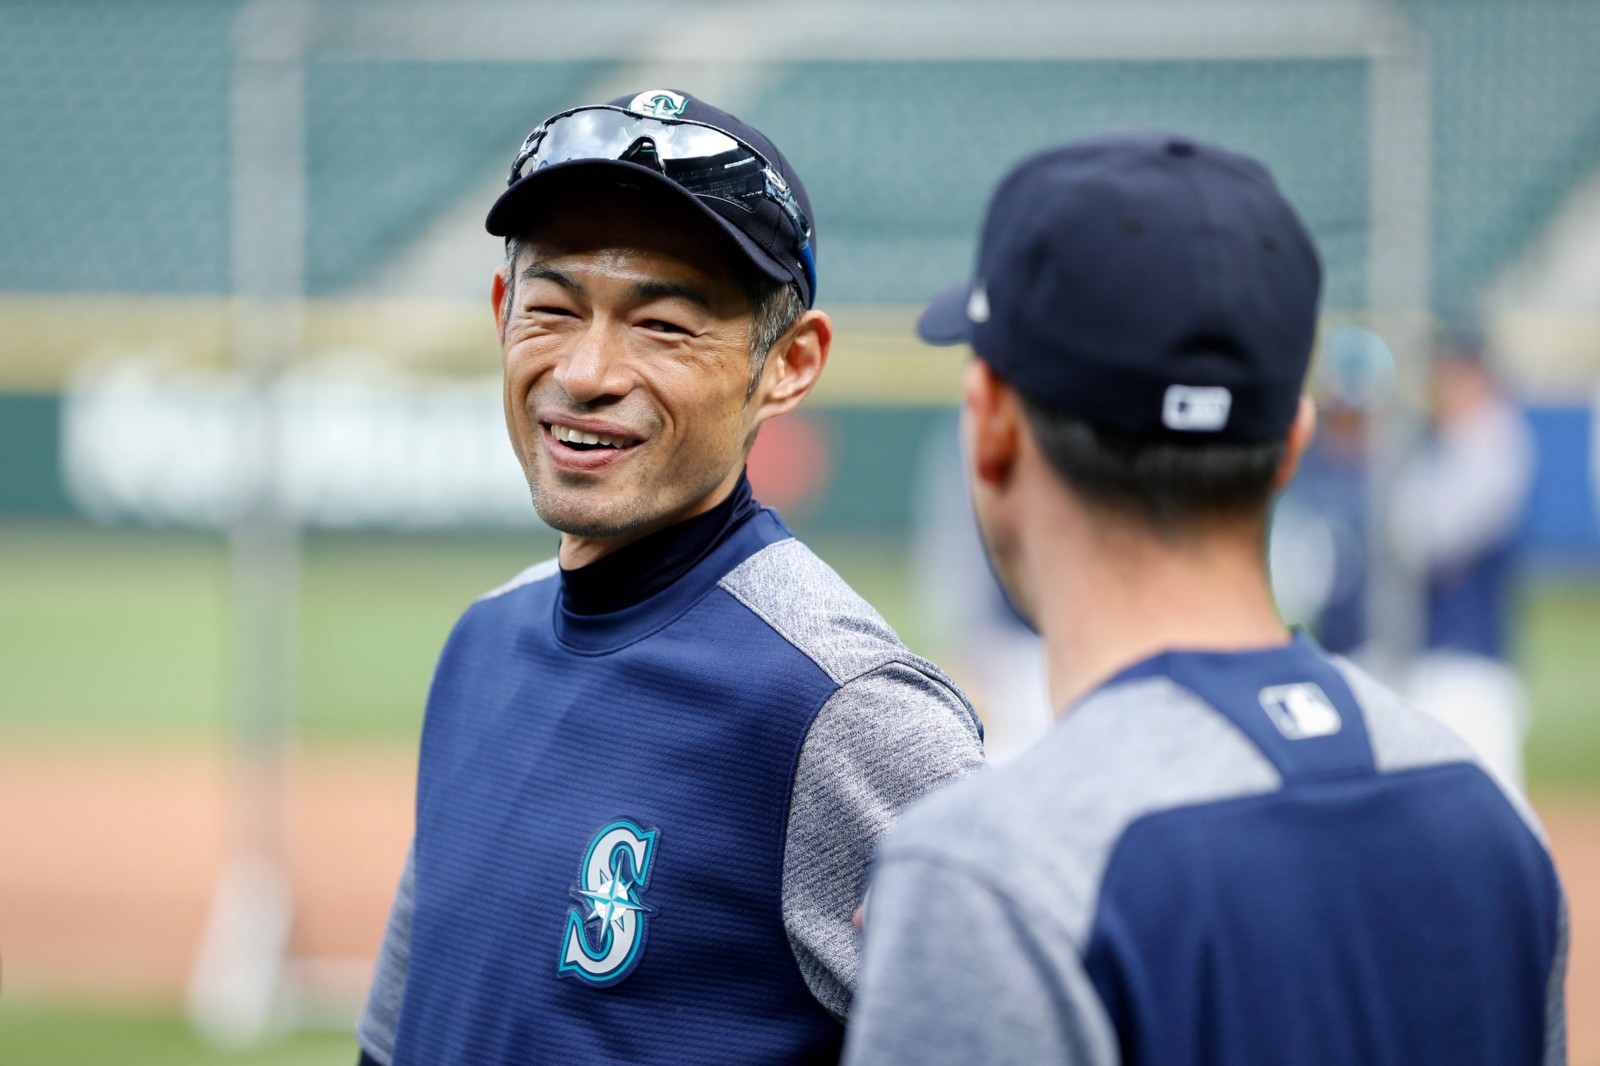 Ichiro now special assistant to Mariners' chairman